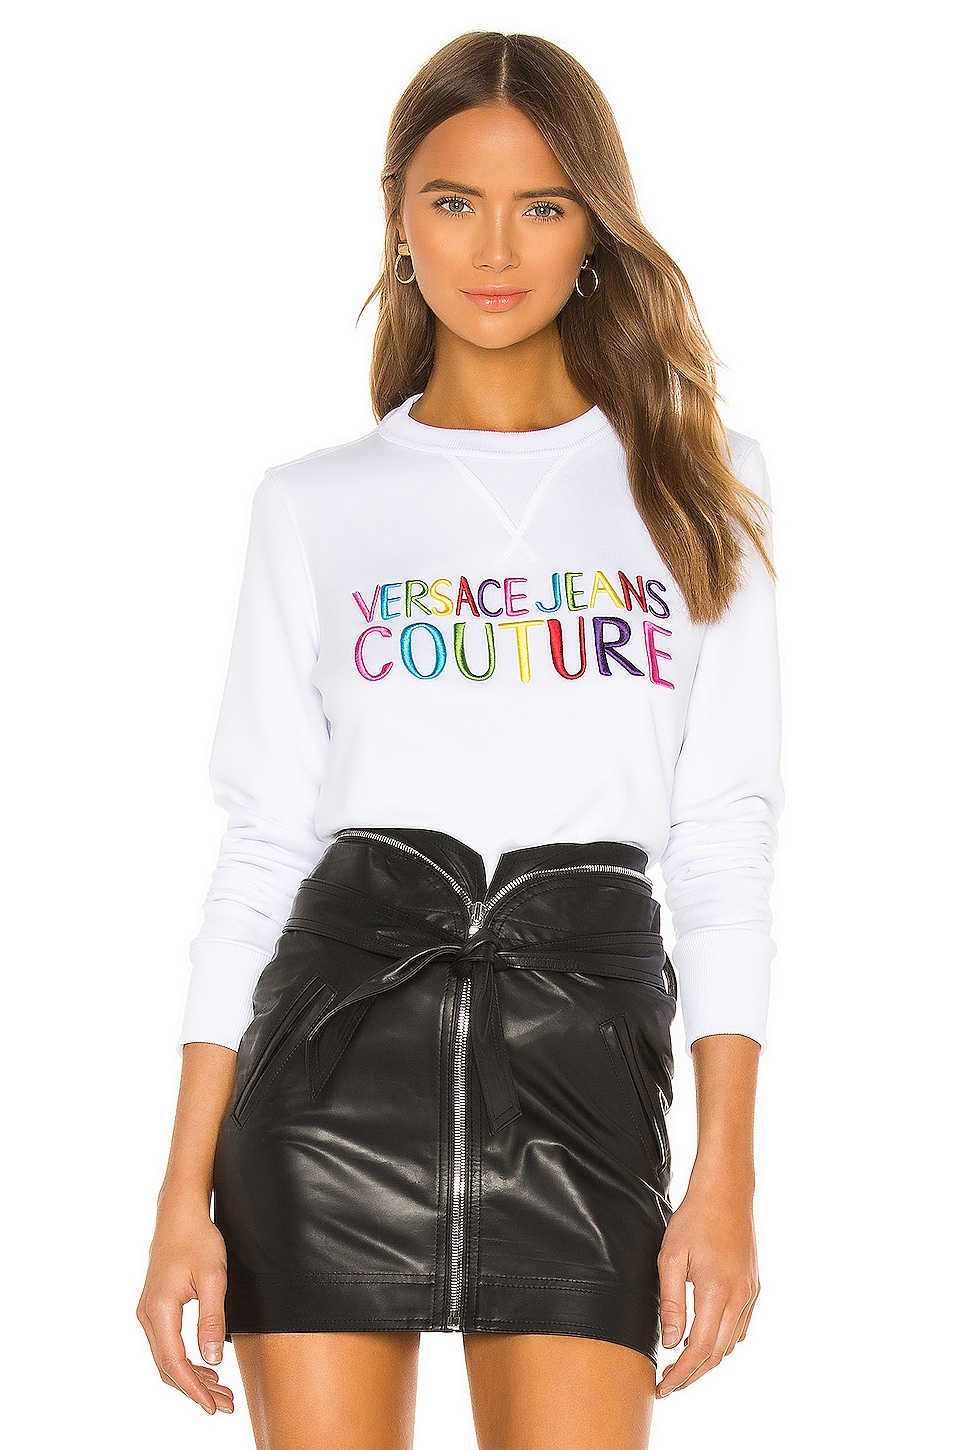 Versace Jeans Couture SWEAT